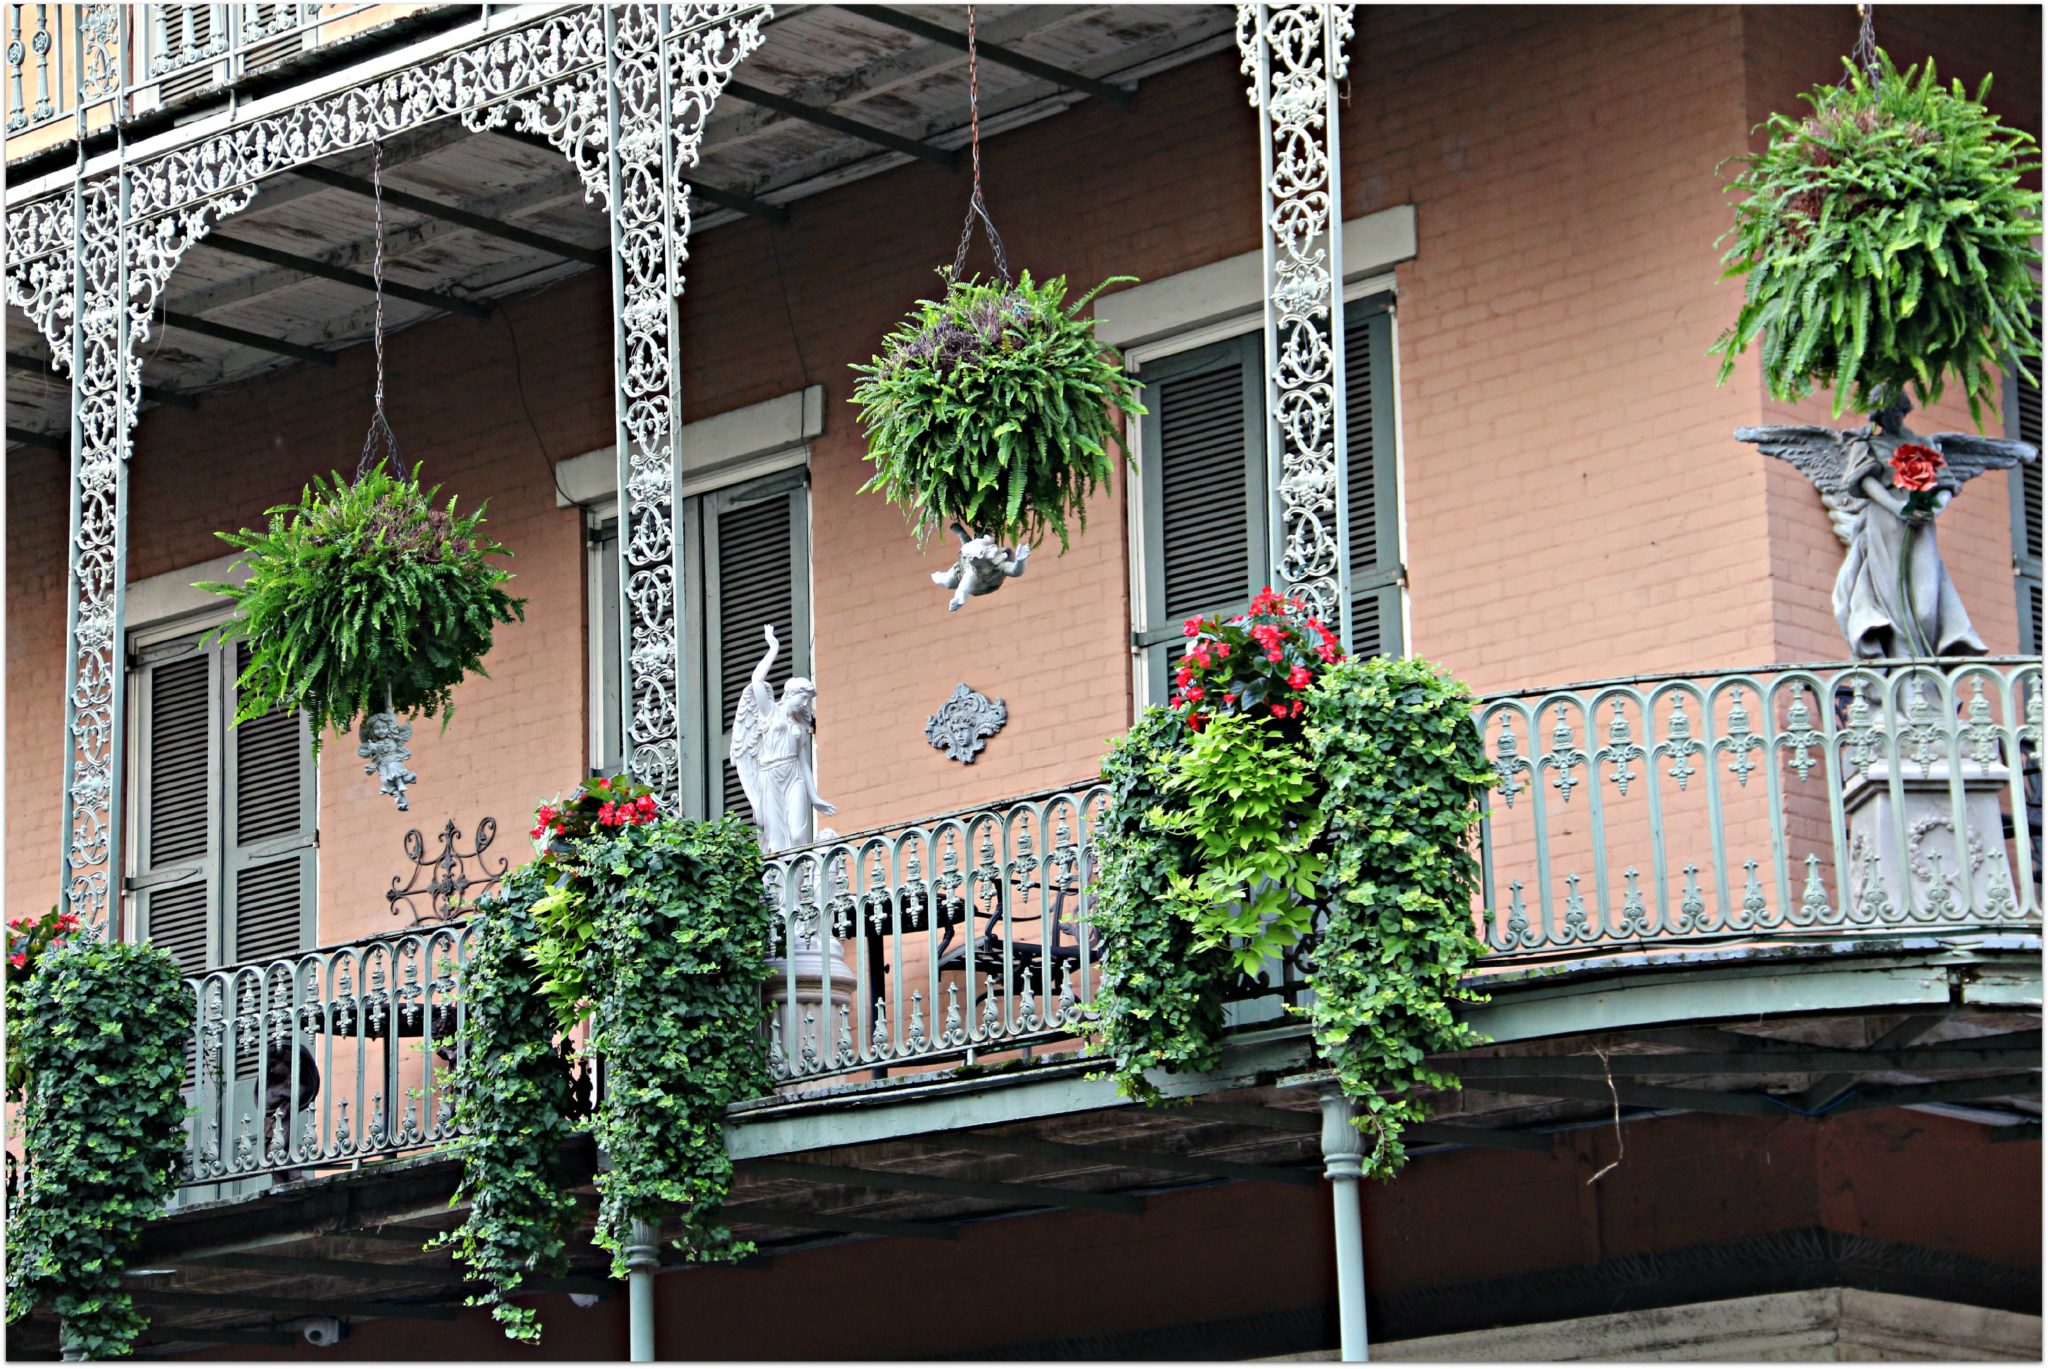 Balconies on Royal Street